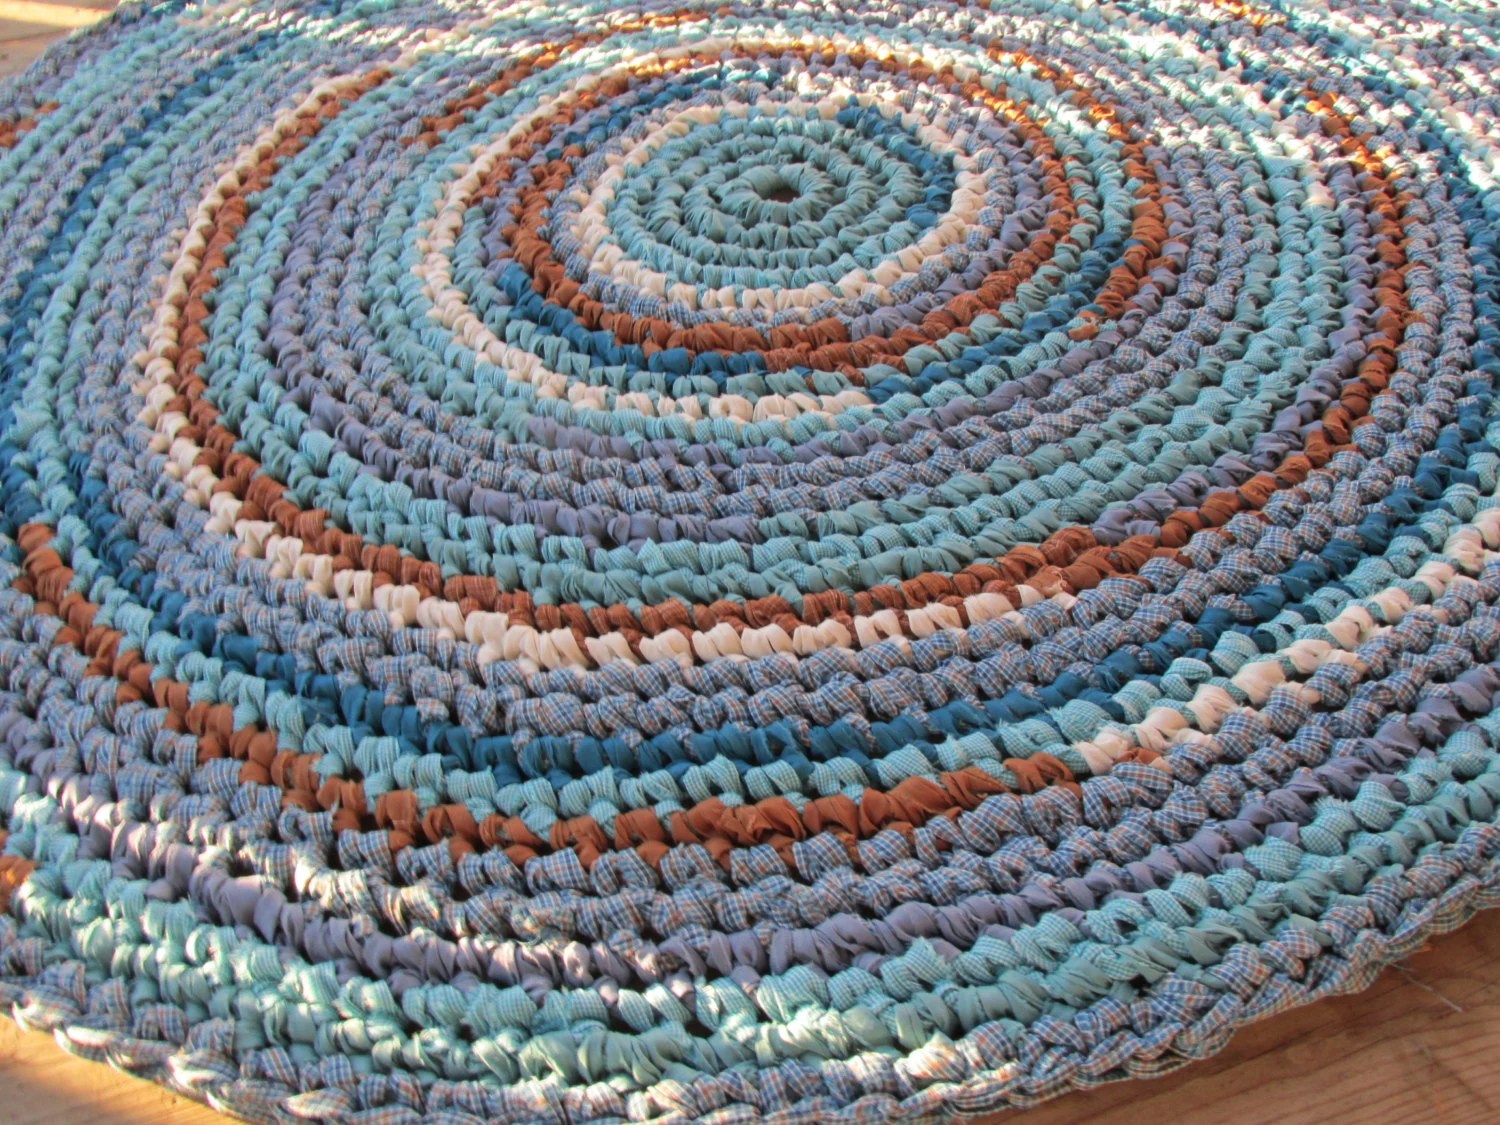 Sea Glass Mosaic Crochet Rag Rug Round Large Cotton Washable